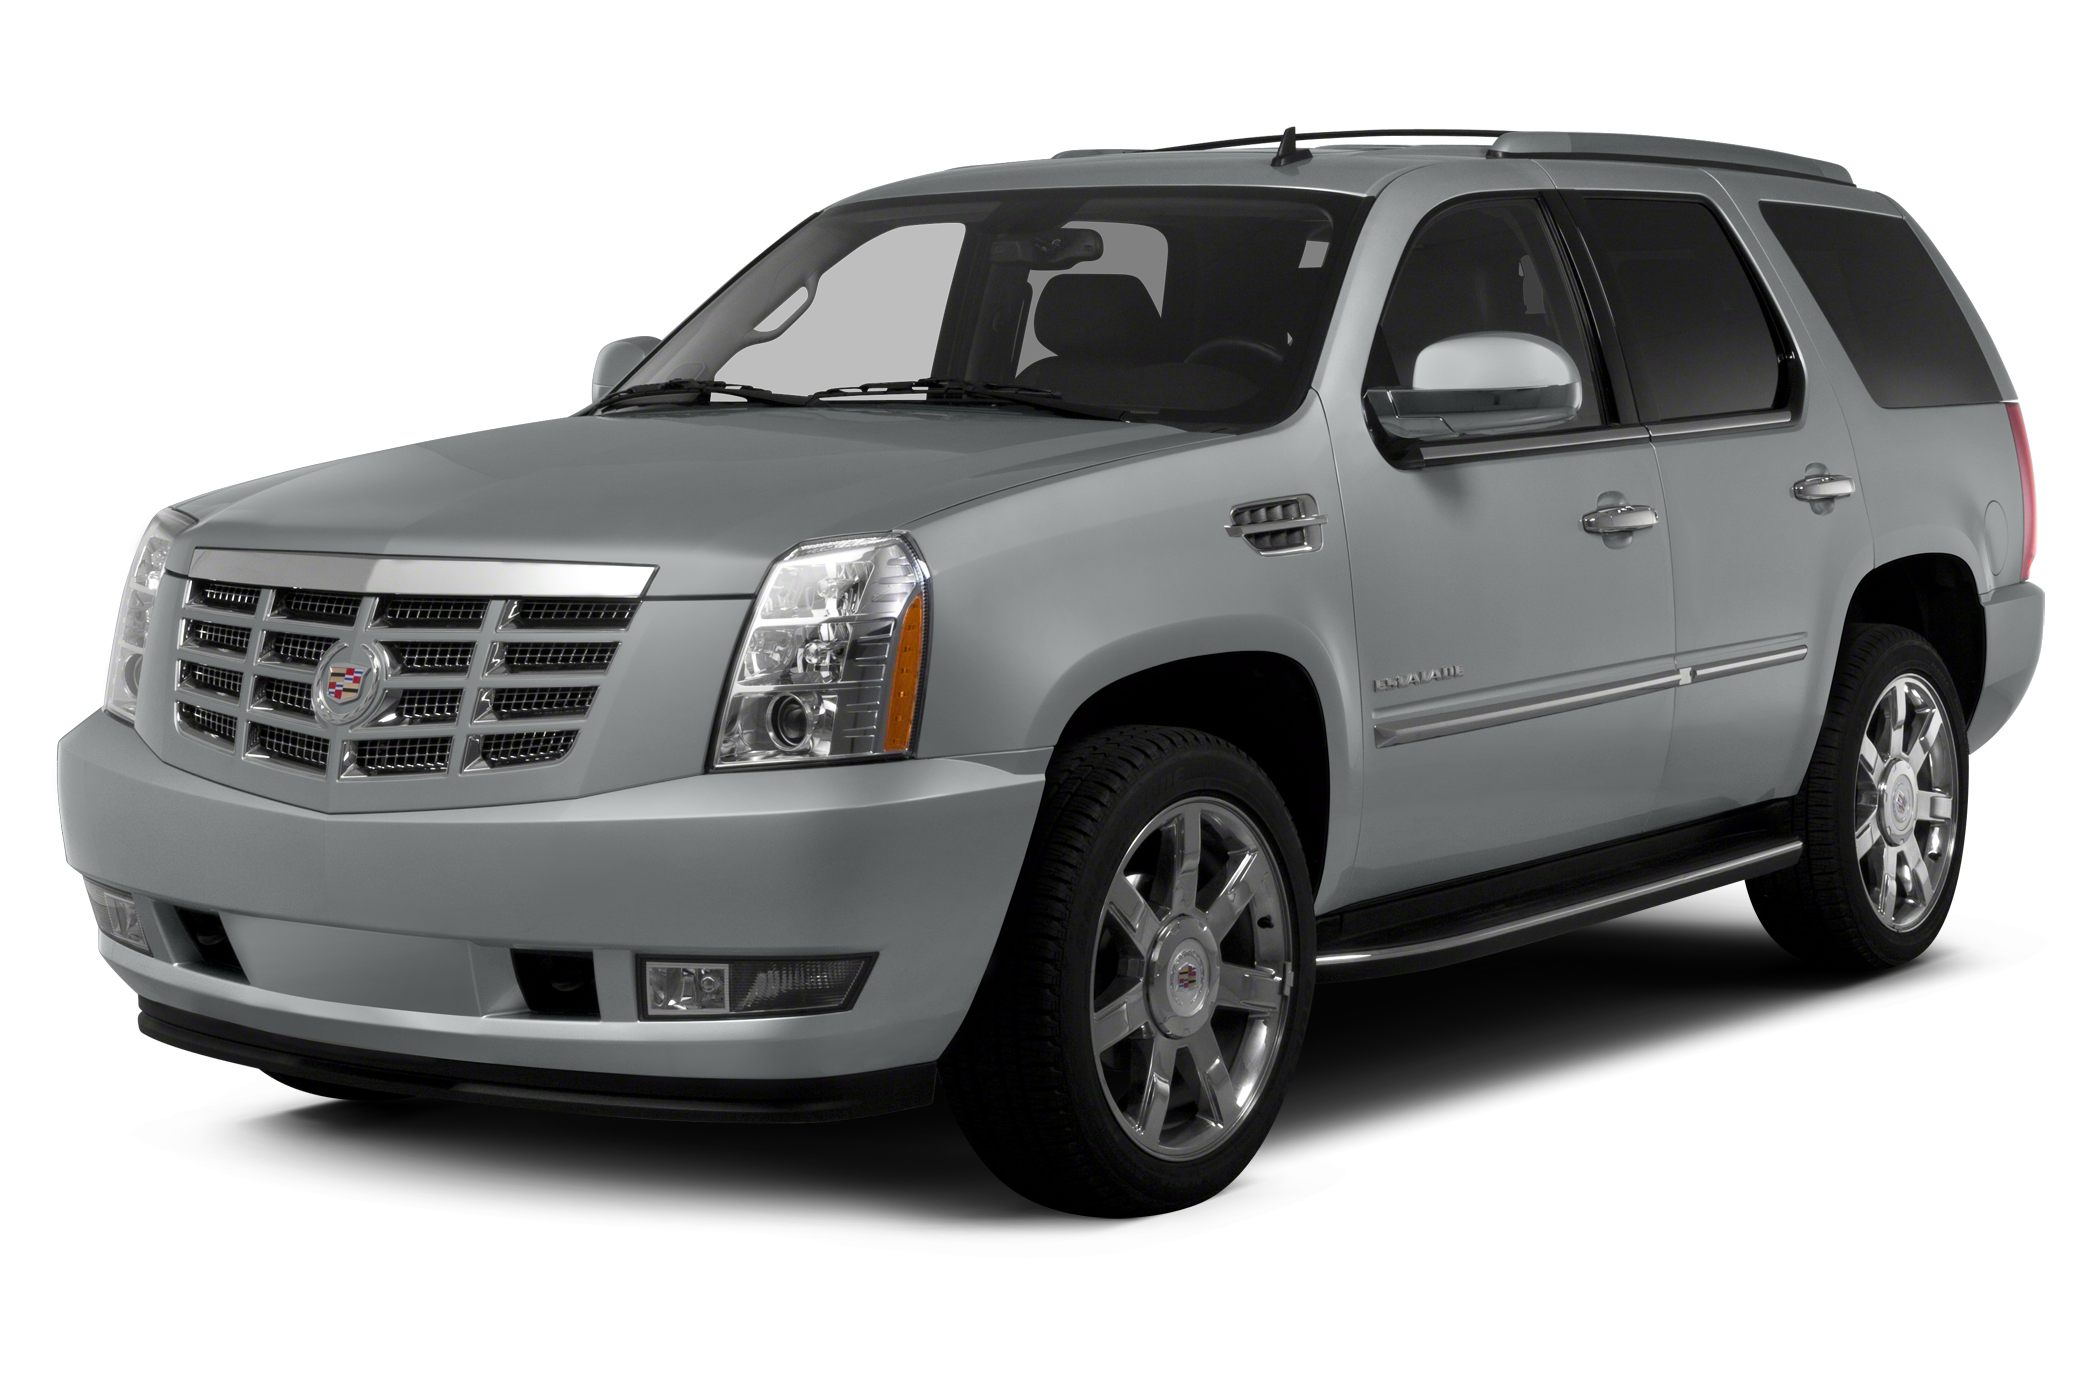 2014 Cadillac Escalade Premium SUV for sale in Greenwood for $59,980 with 13,771 miles